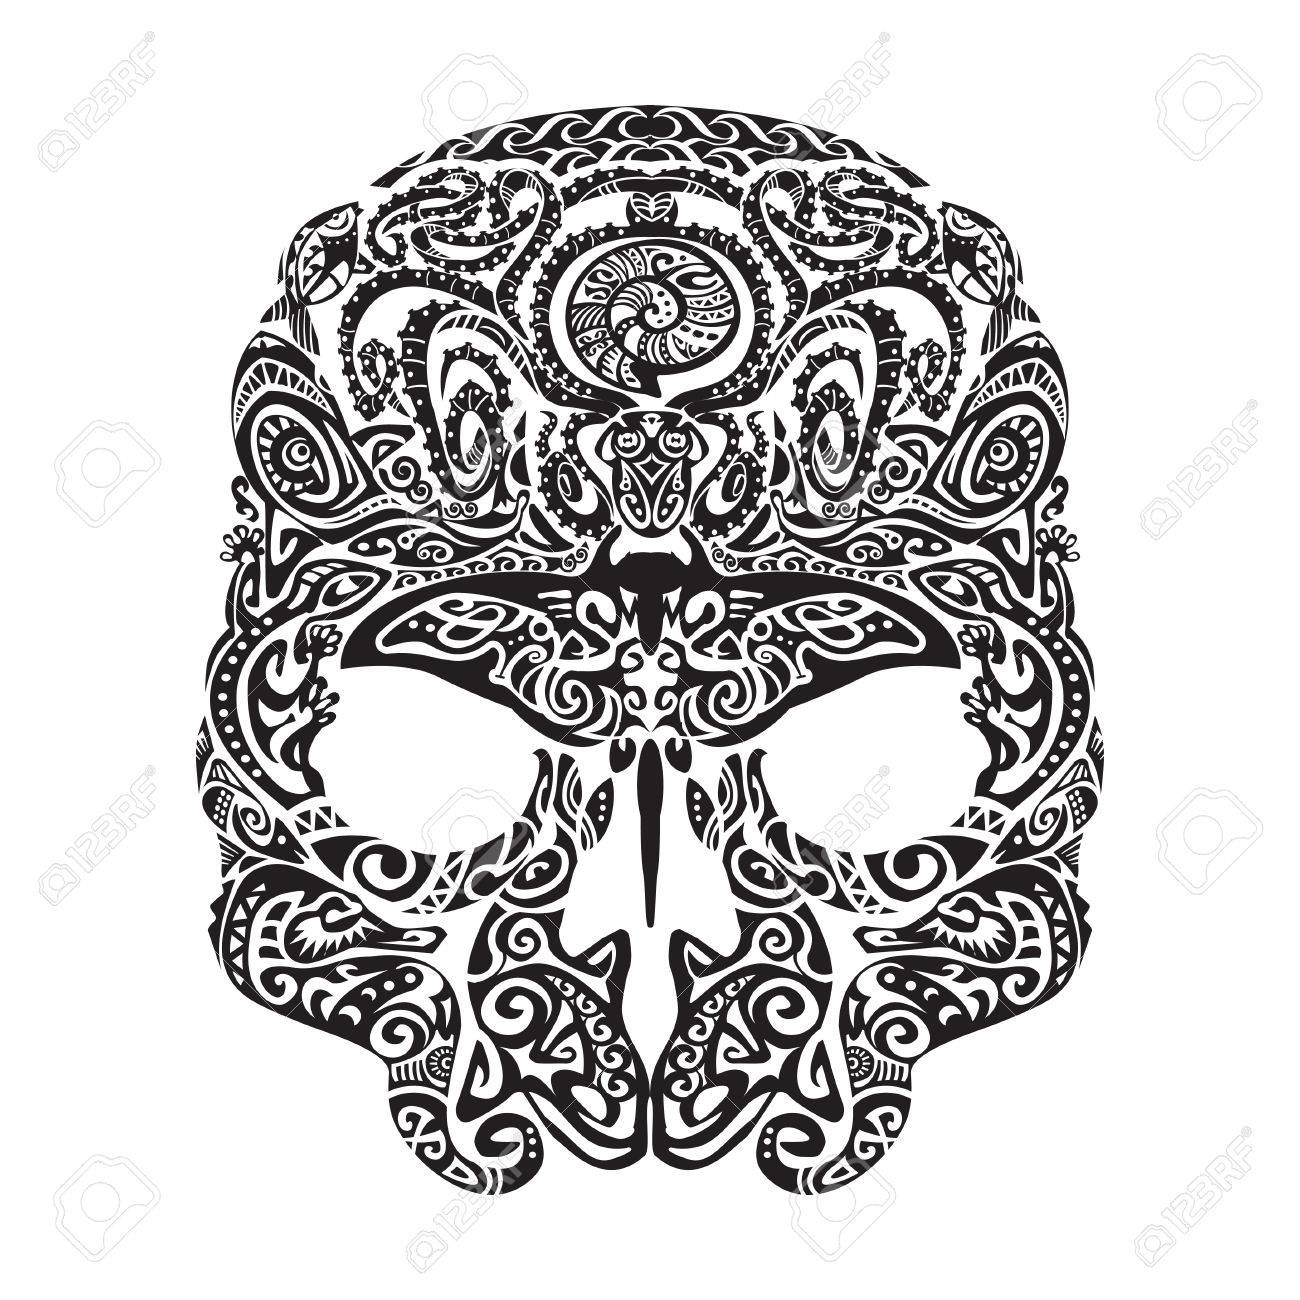 1300x1300 Skull Tattoo In The Style Of Maori With Marine Life. Sea Creatures